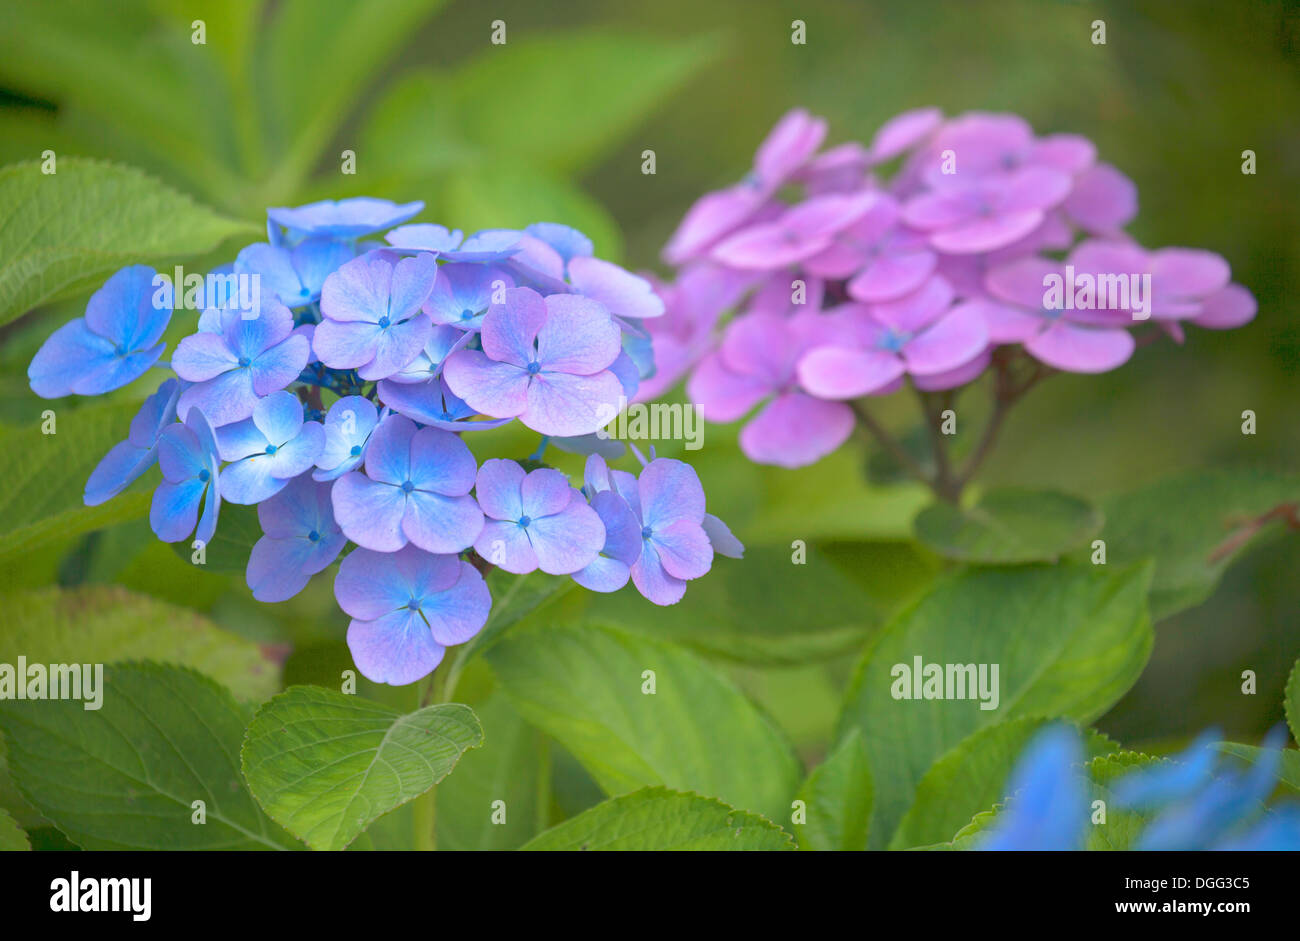 Close up of Hydrangea macrophylla flowers with soft focus and shallow depth of field. - Stock Image